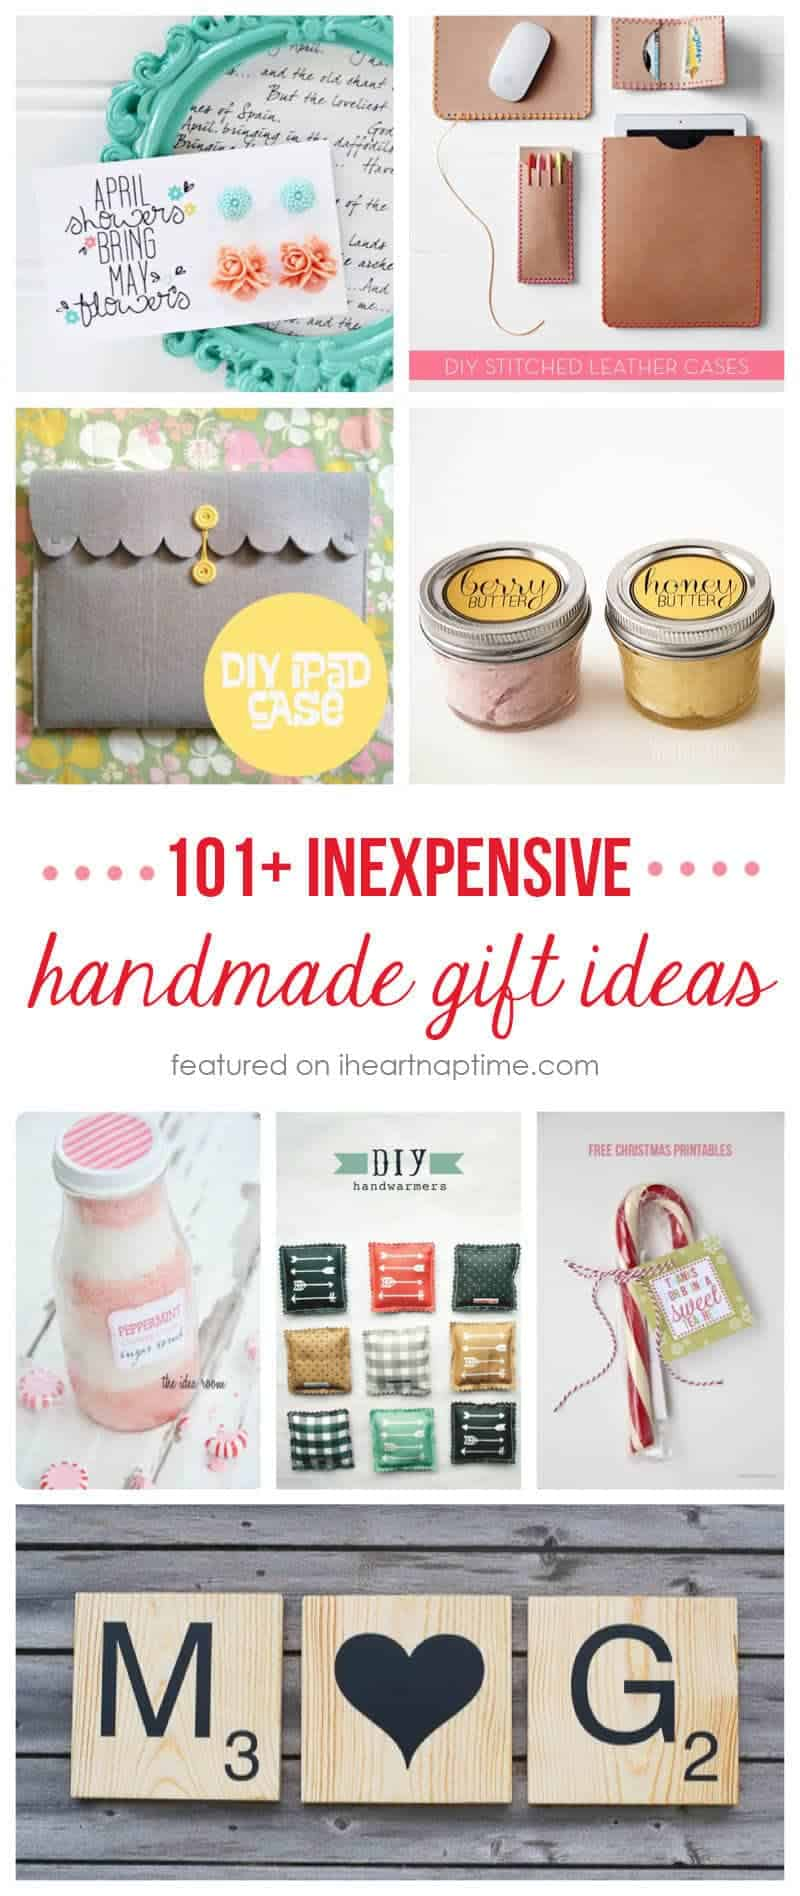 101 handmade christmas ornament ideas - 101 Inexpensive Handmade Christmas Gifts On Iheartnaptime Com